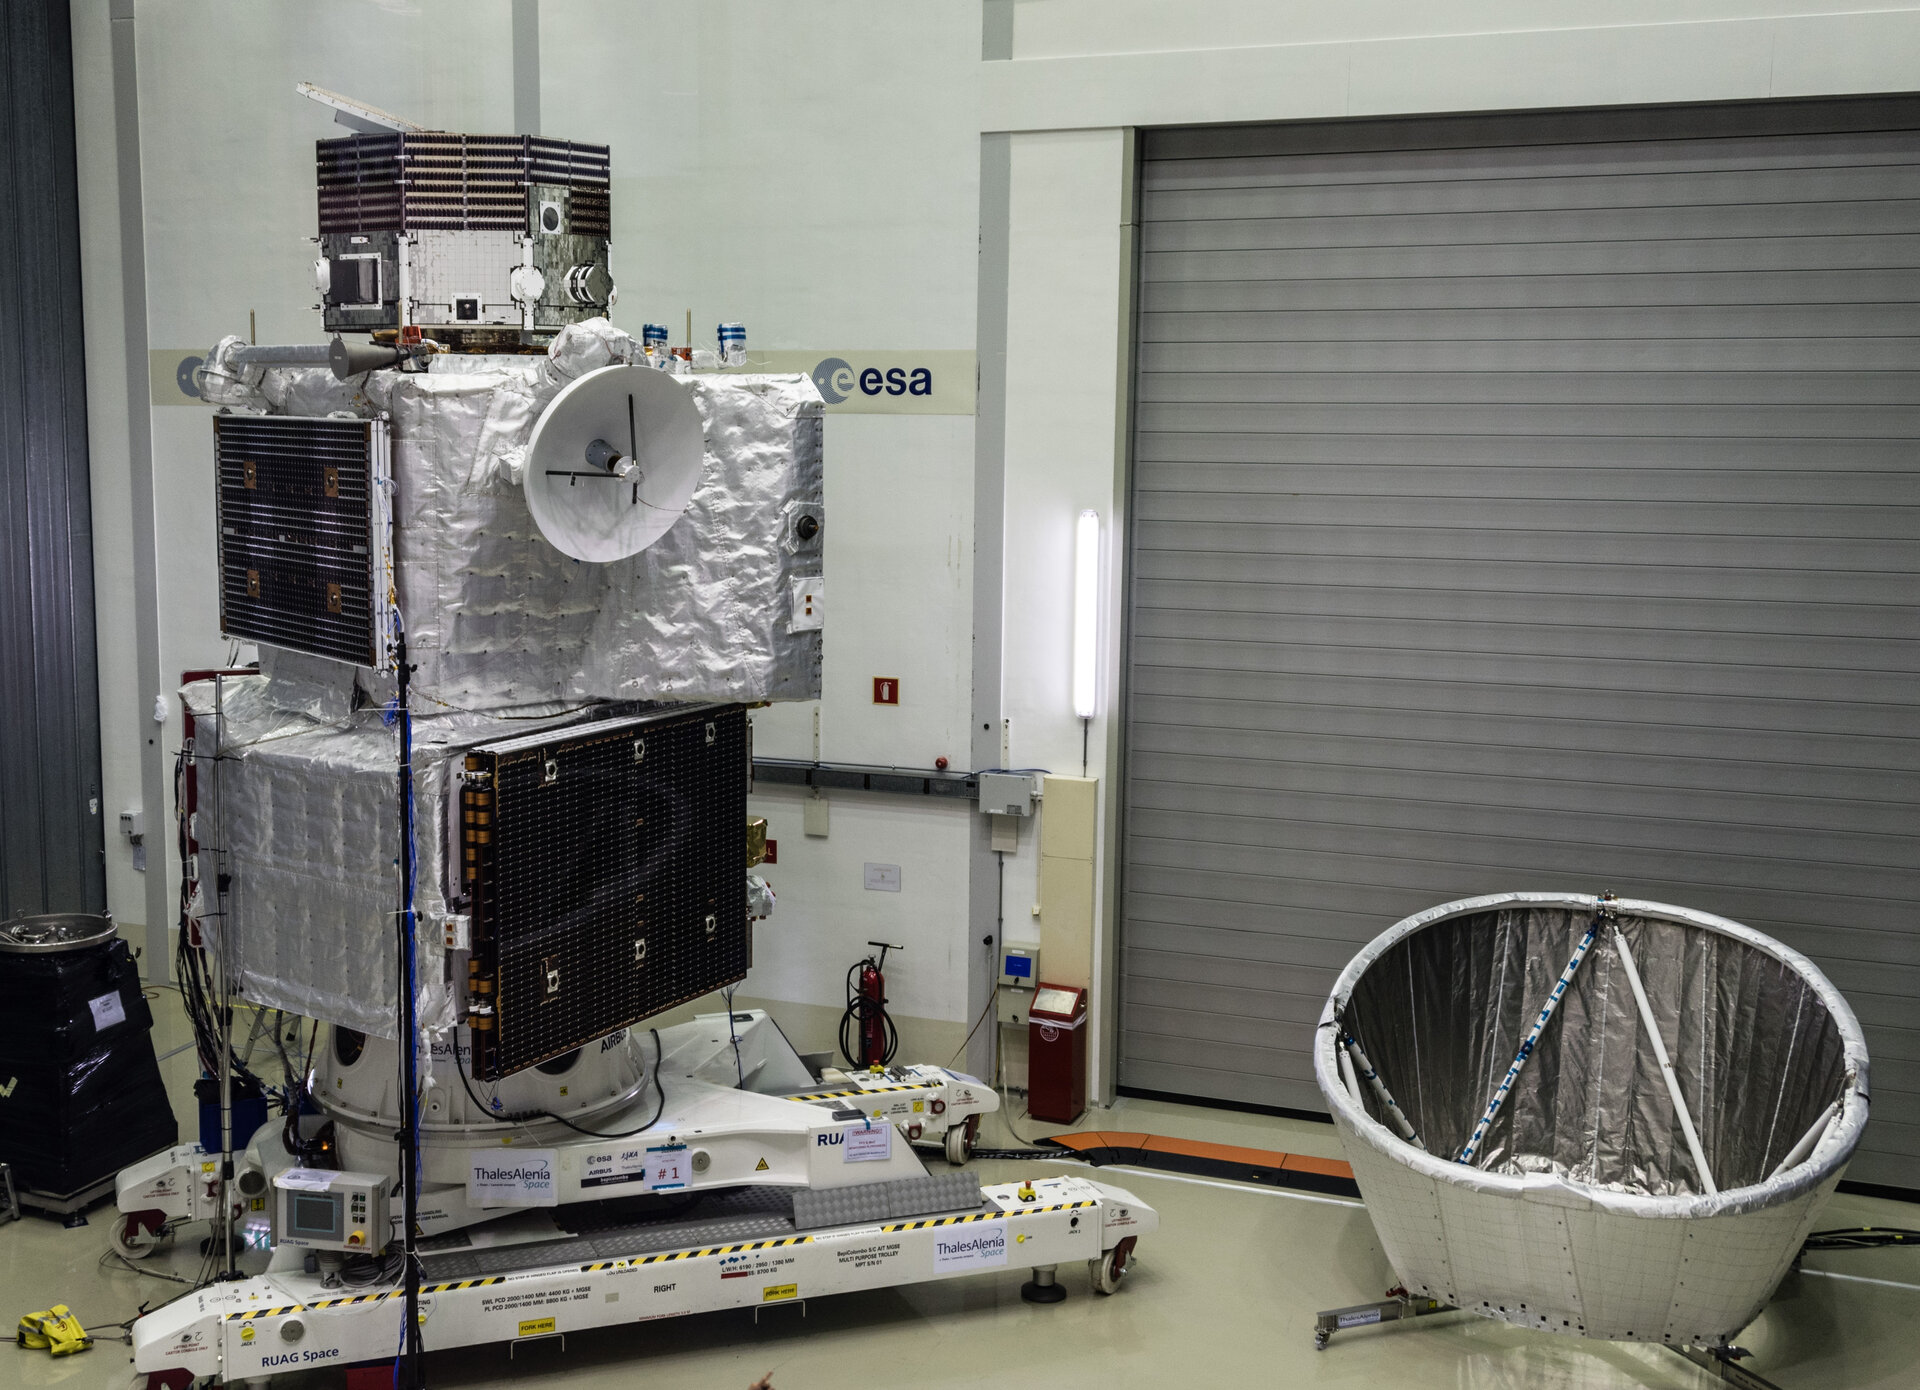 BepiColombo spacecraft stack